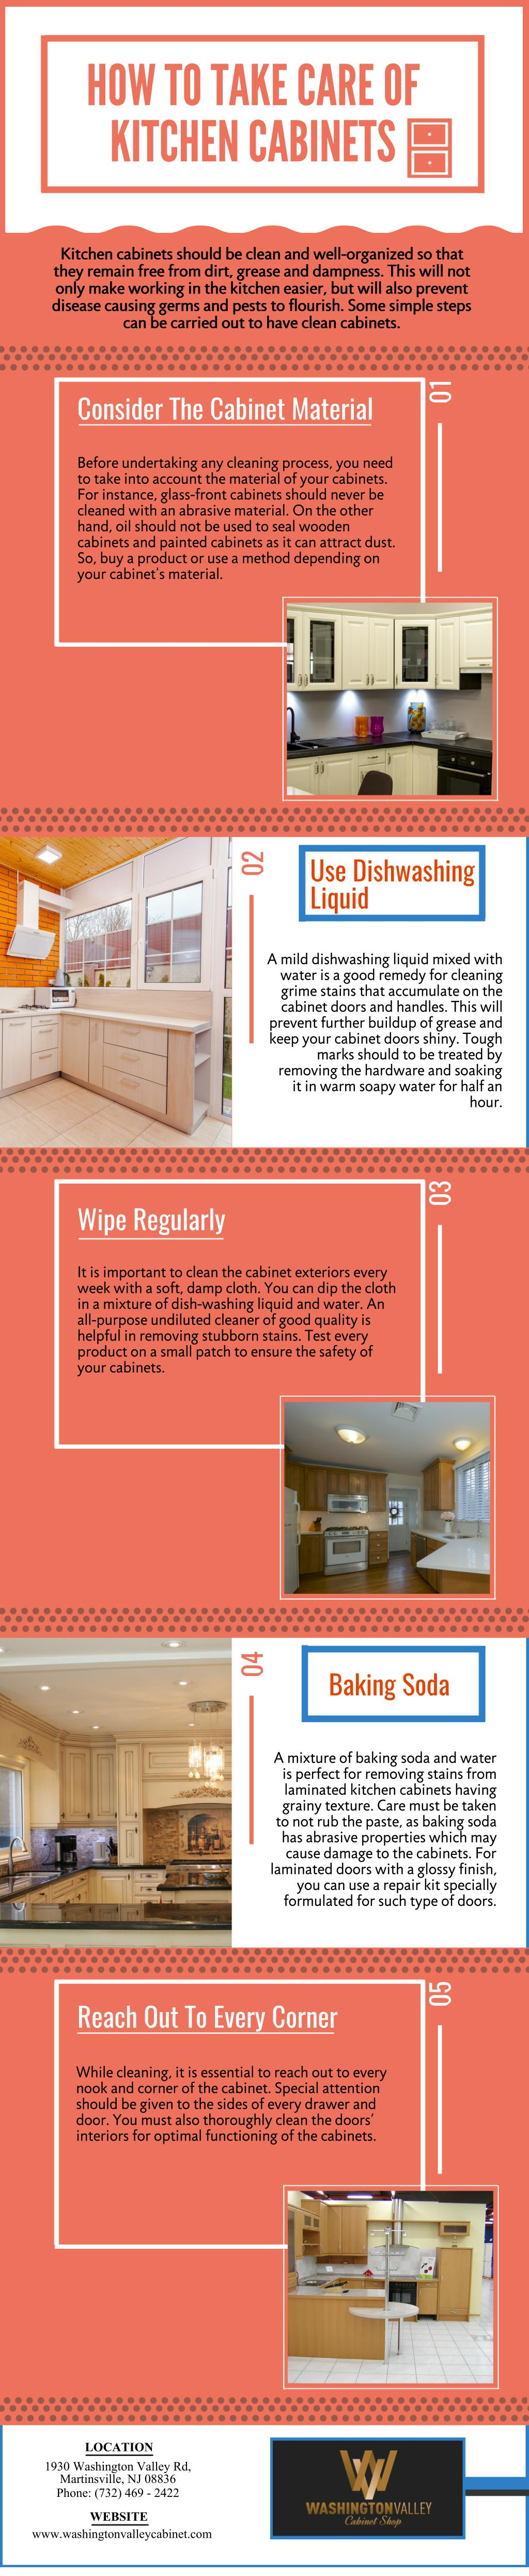 Ppt Kitchen Cabinet Care Powerpoint Presentation Free Download